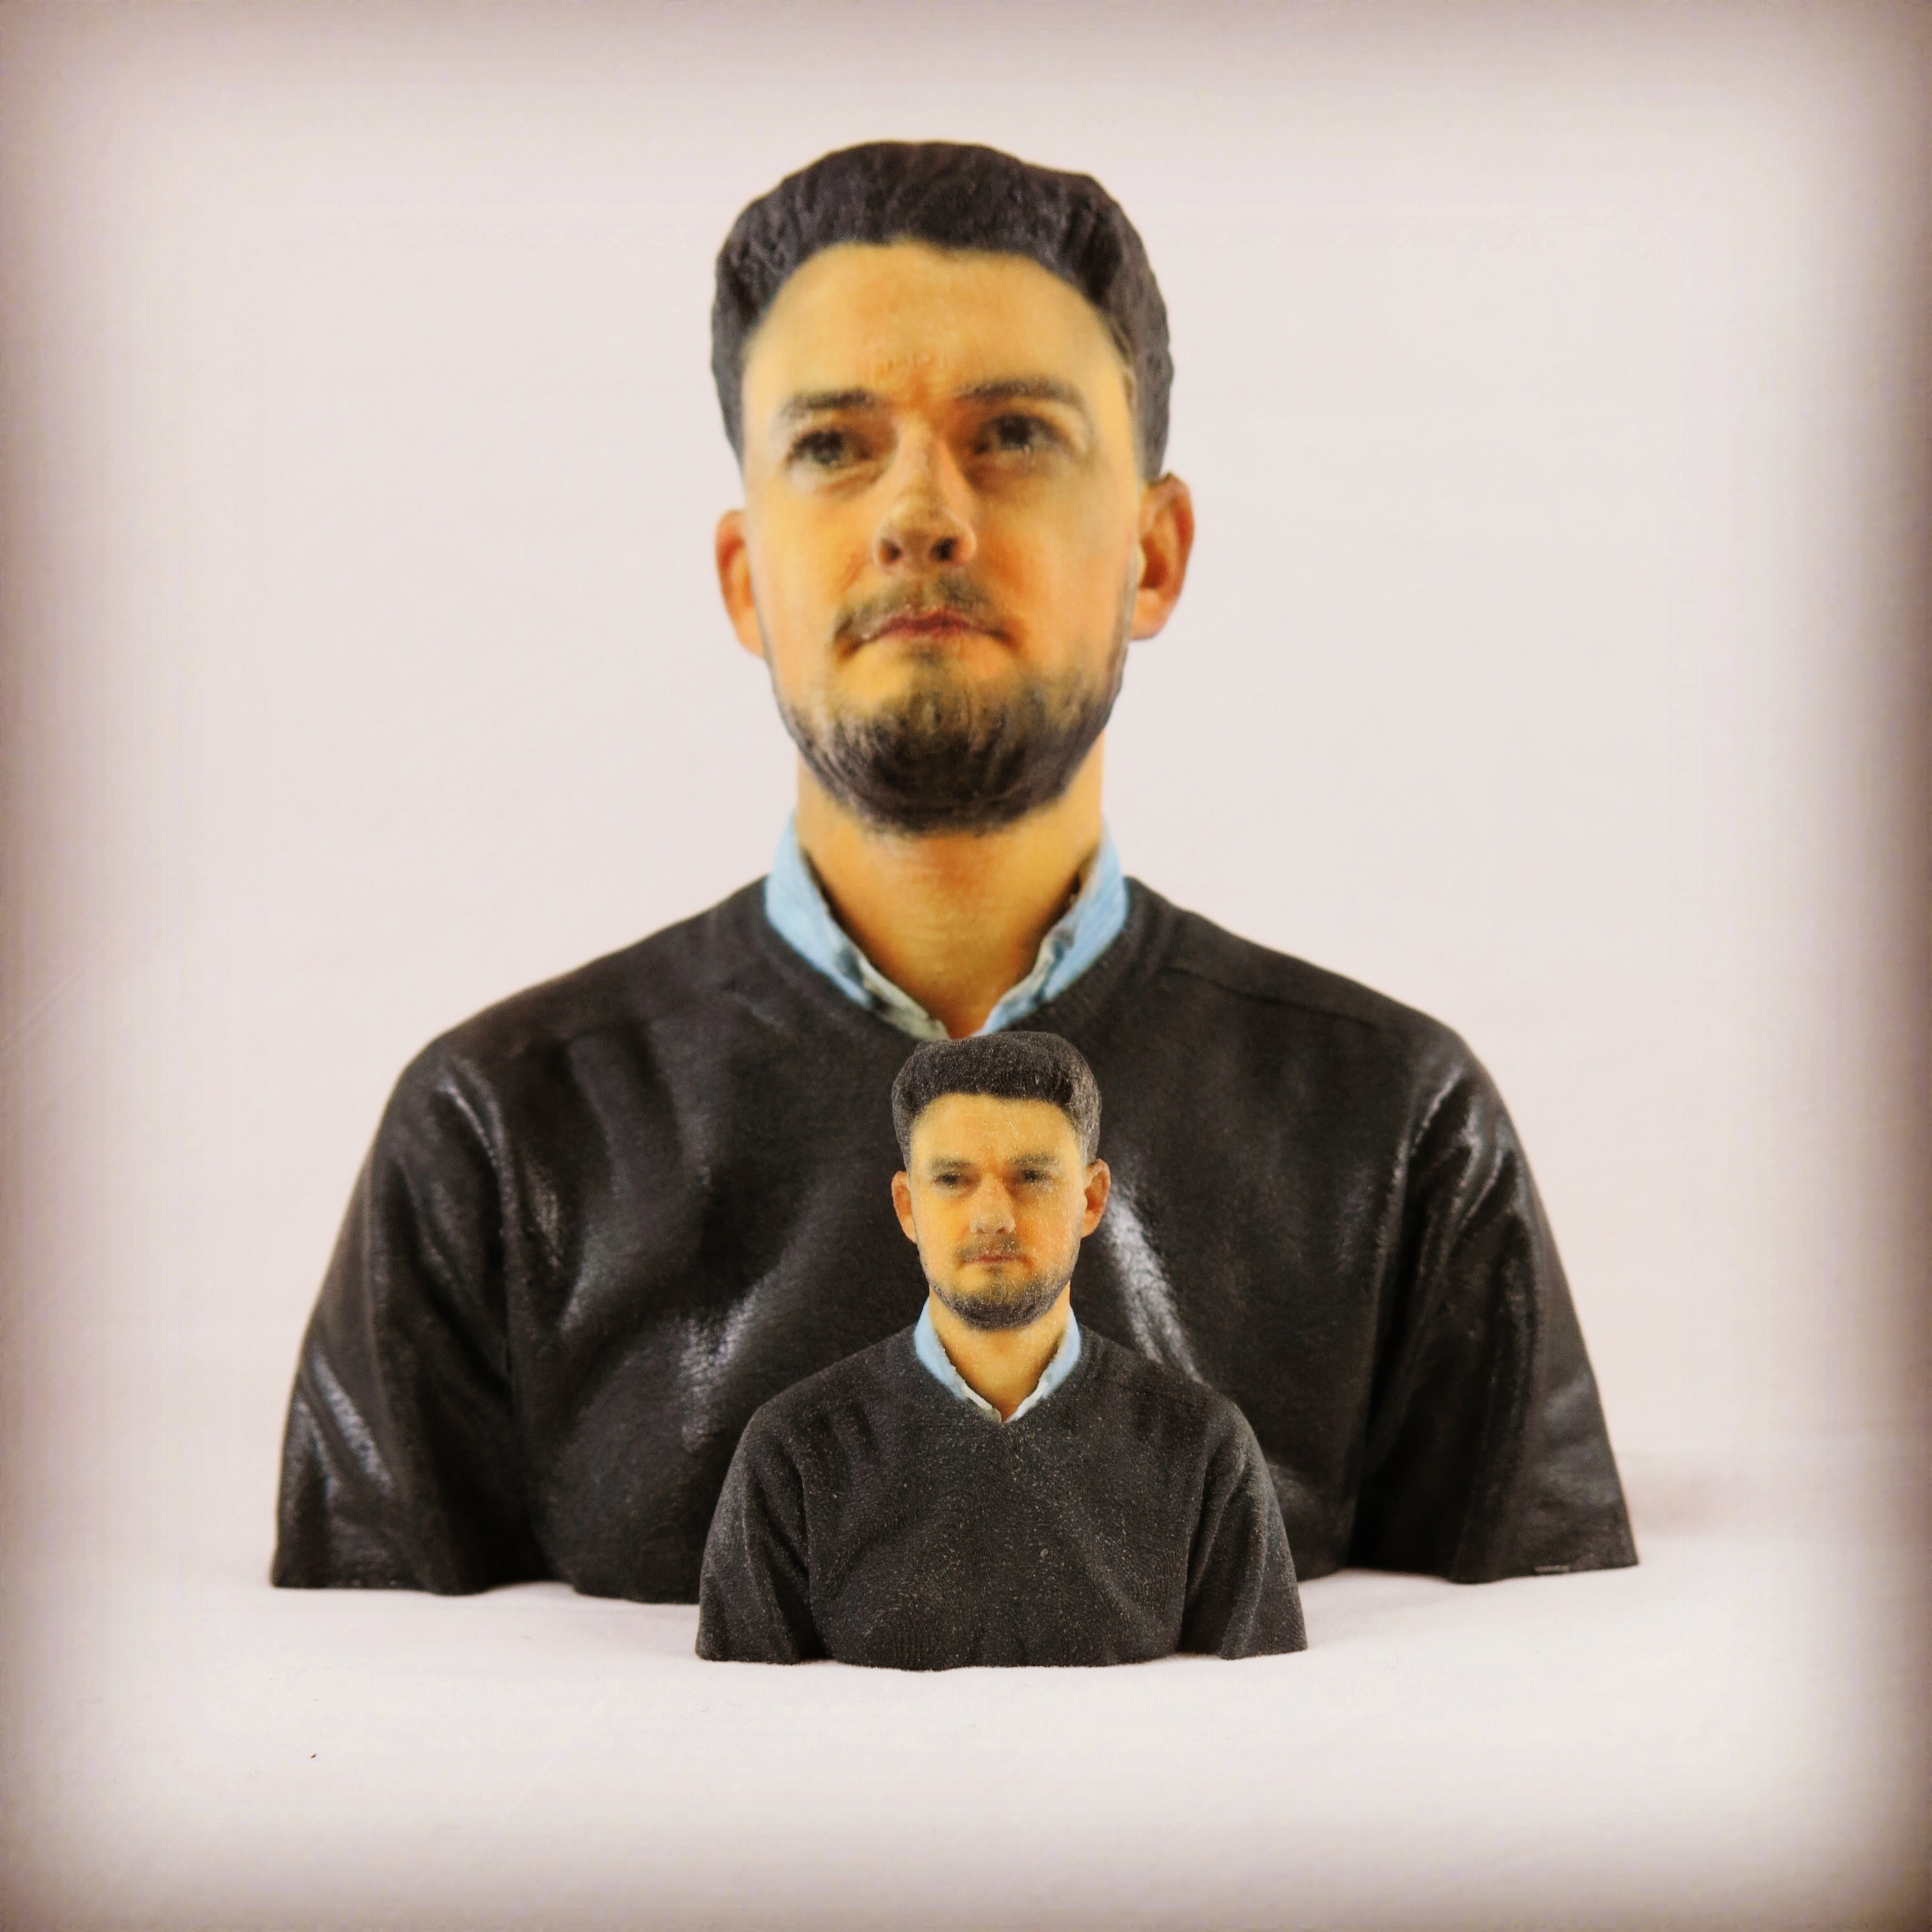 Get your hands on your 3D printed HD selfie!